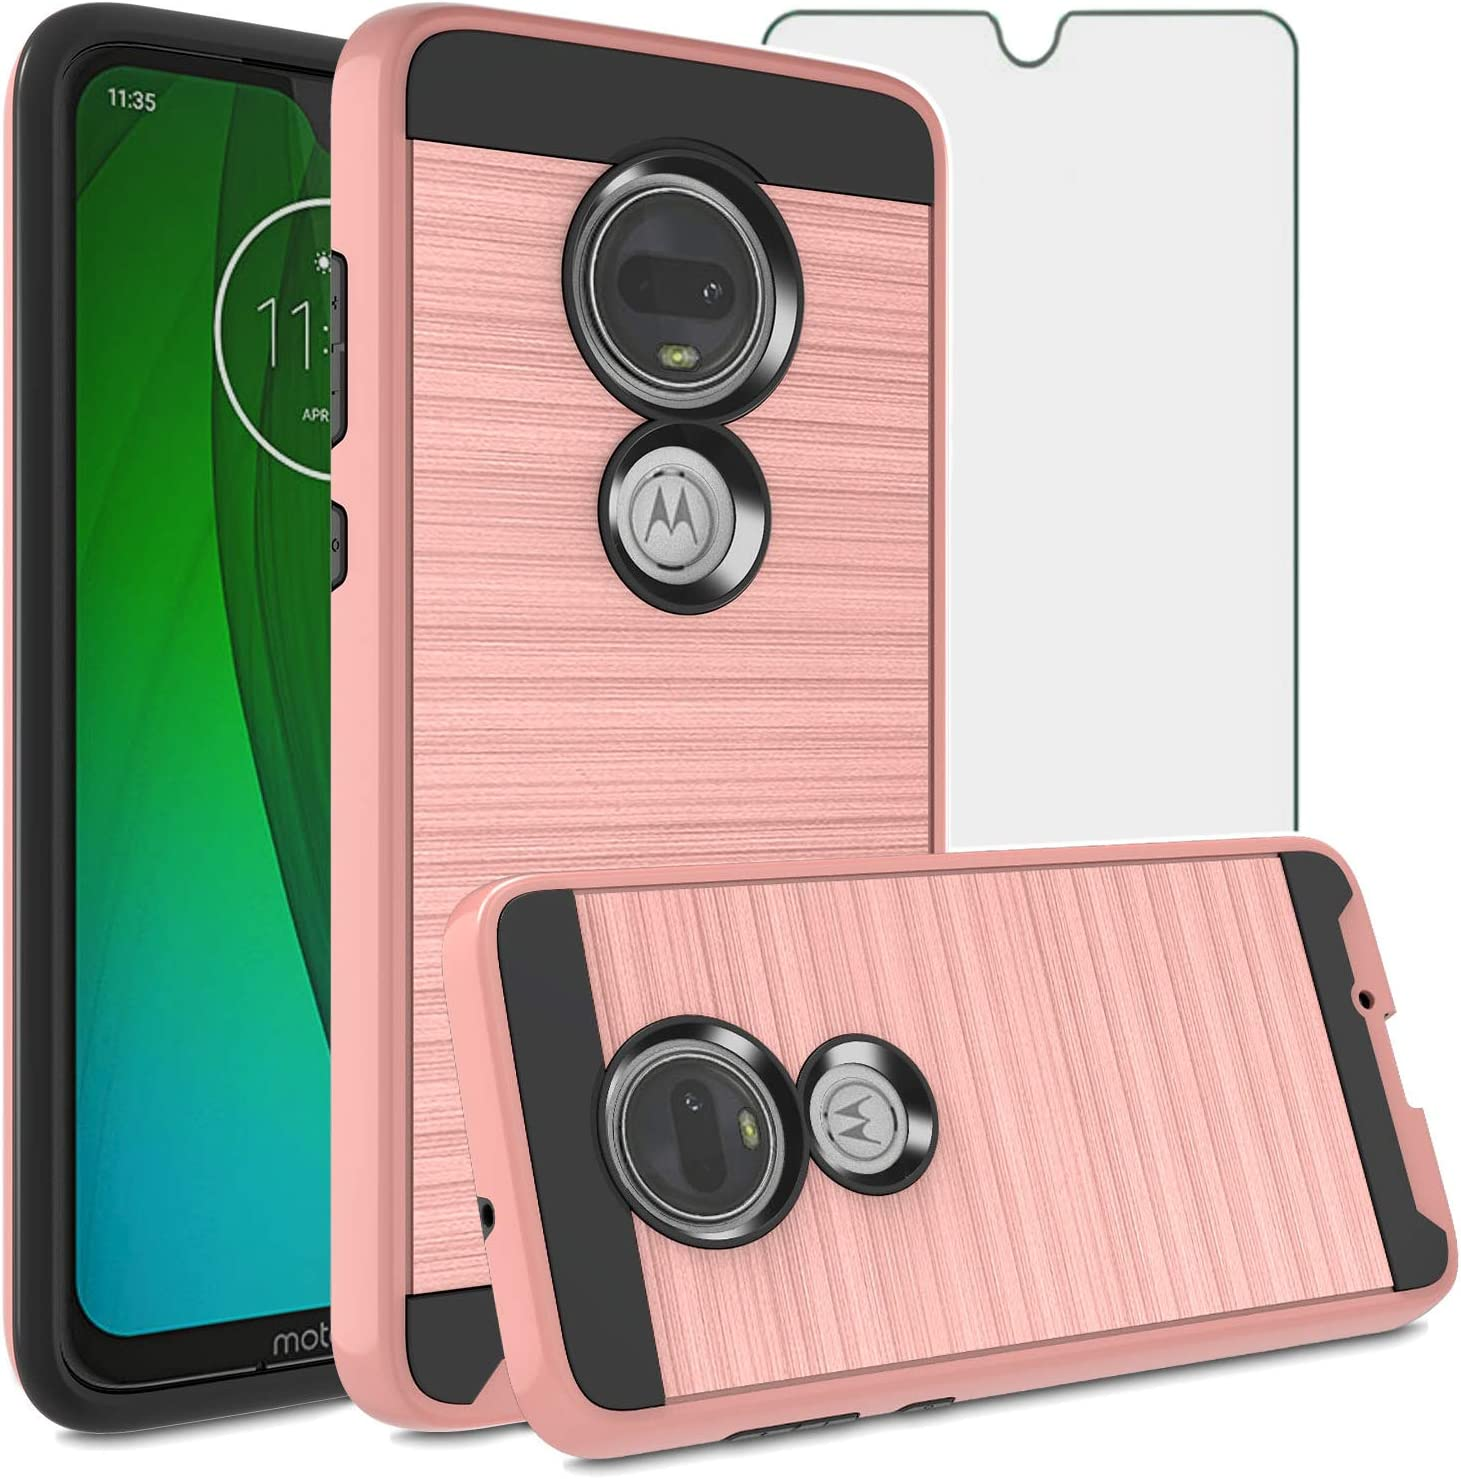 Asuwish Compatible with Moto G7/G7+/Revvlry Plus Case Tempered Glass Screen Protector Cover Slim Hard Cell Phone Cases for Motorola G7Plus Moto7 XT1962-1 G 7 7G Tmobile Revvlry+ Rose Gold